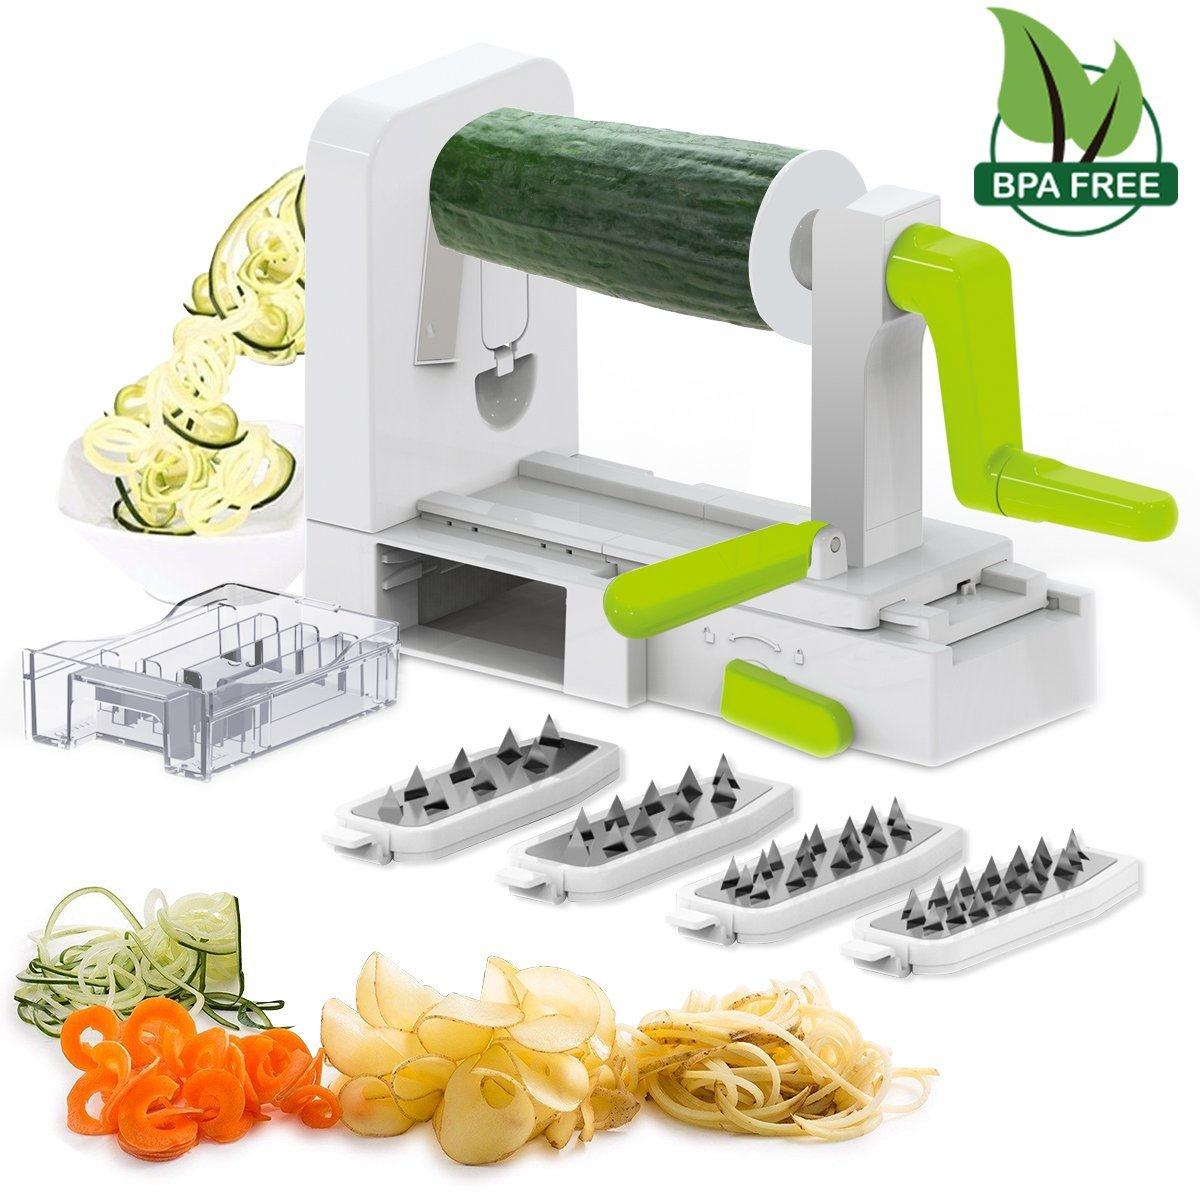 5 Blade Spiral Slicer - Spiralizer, iLove Cooking Vegetable Fruit Veggie Pasta & Spaghetti Maker, Stainless Steel Blades, Strong-Hold with Extra Blades Caddy. BPA Free